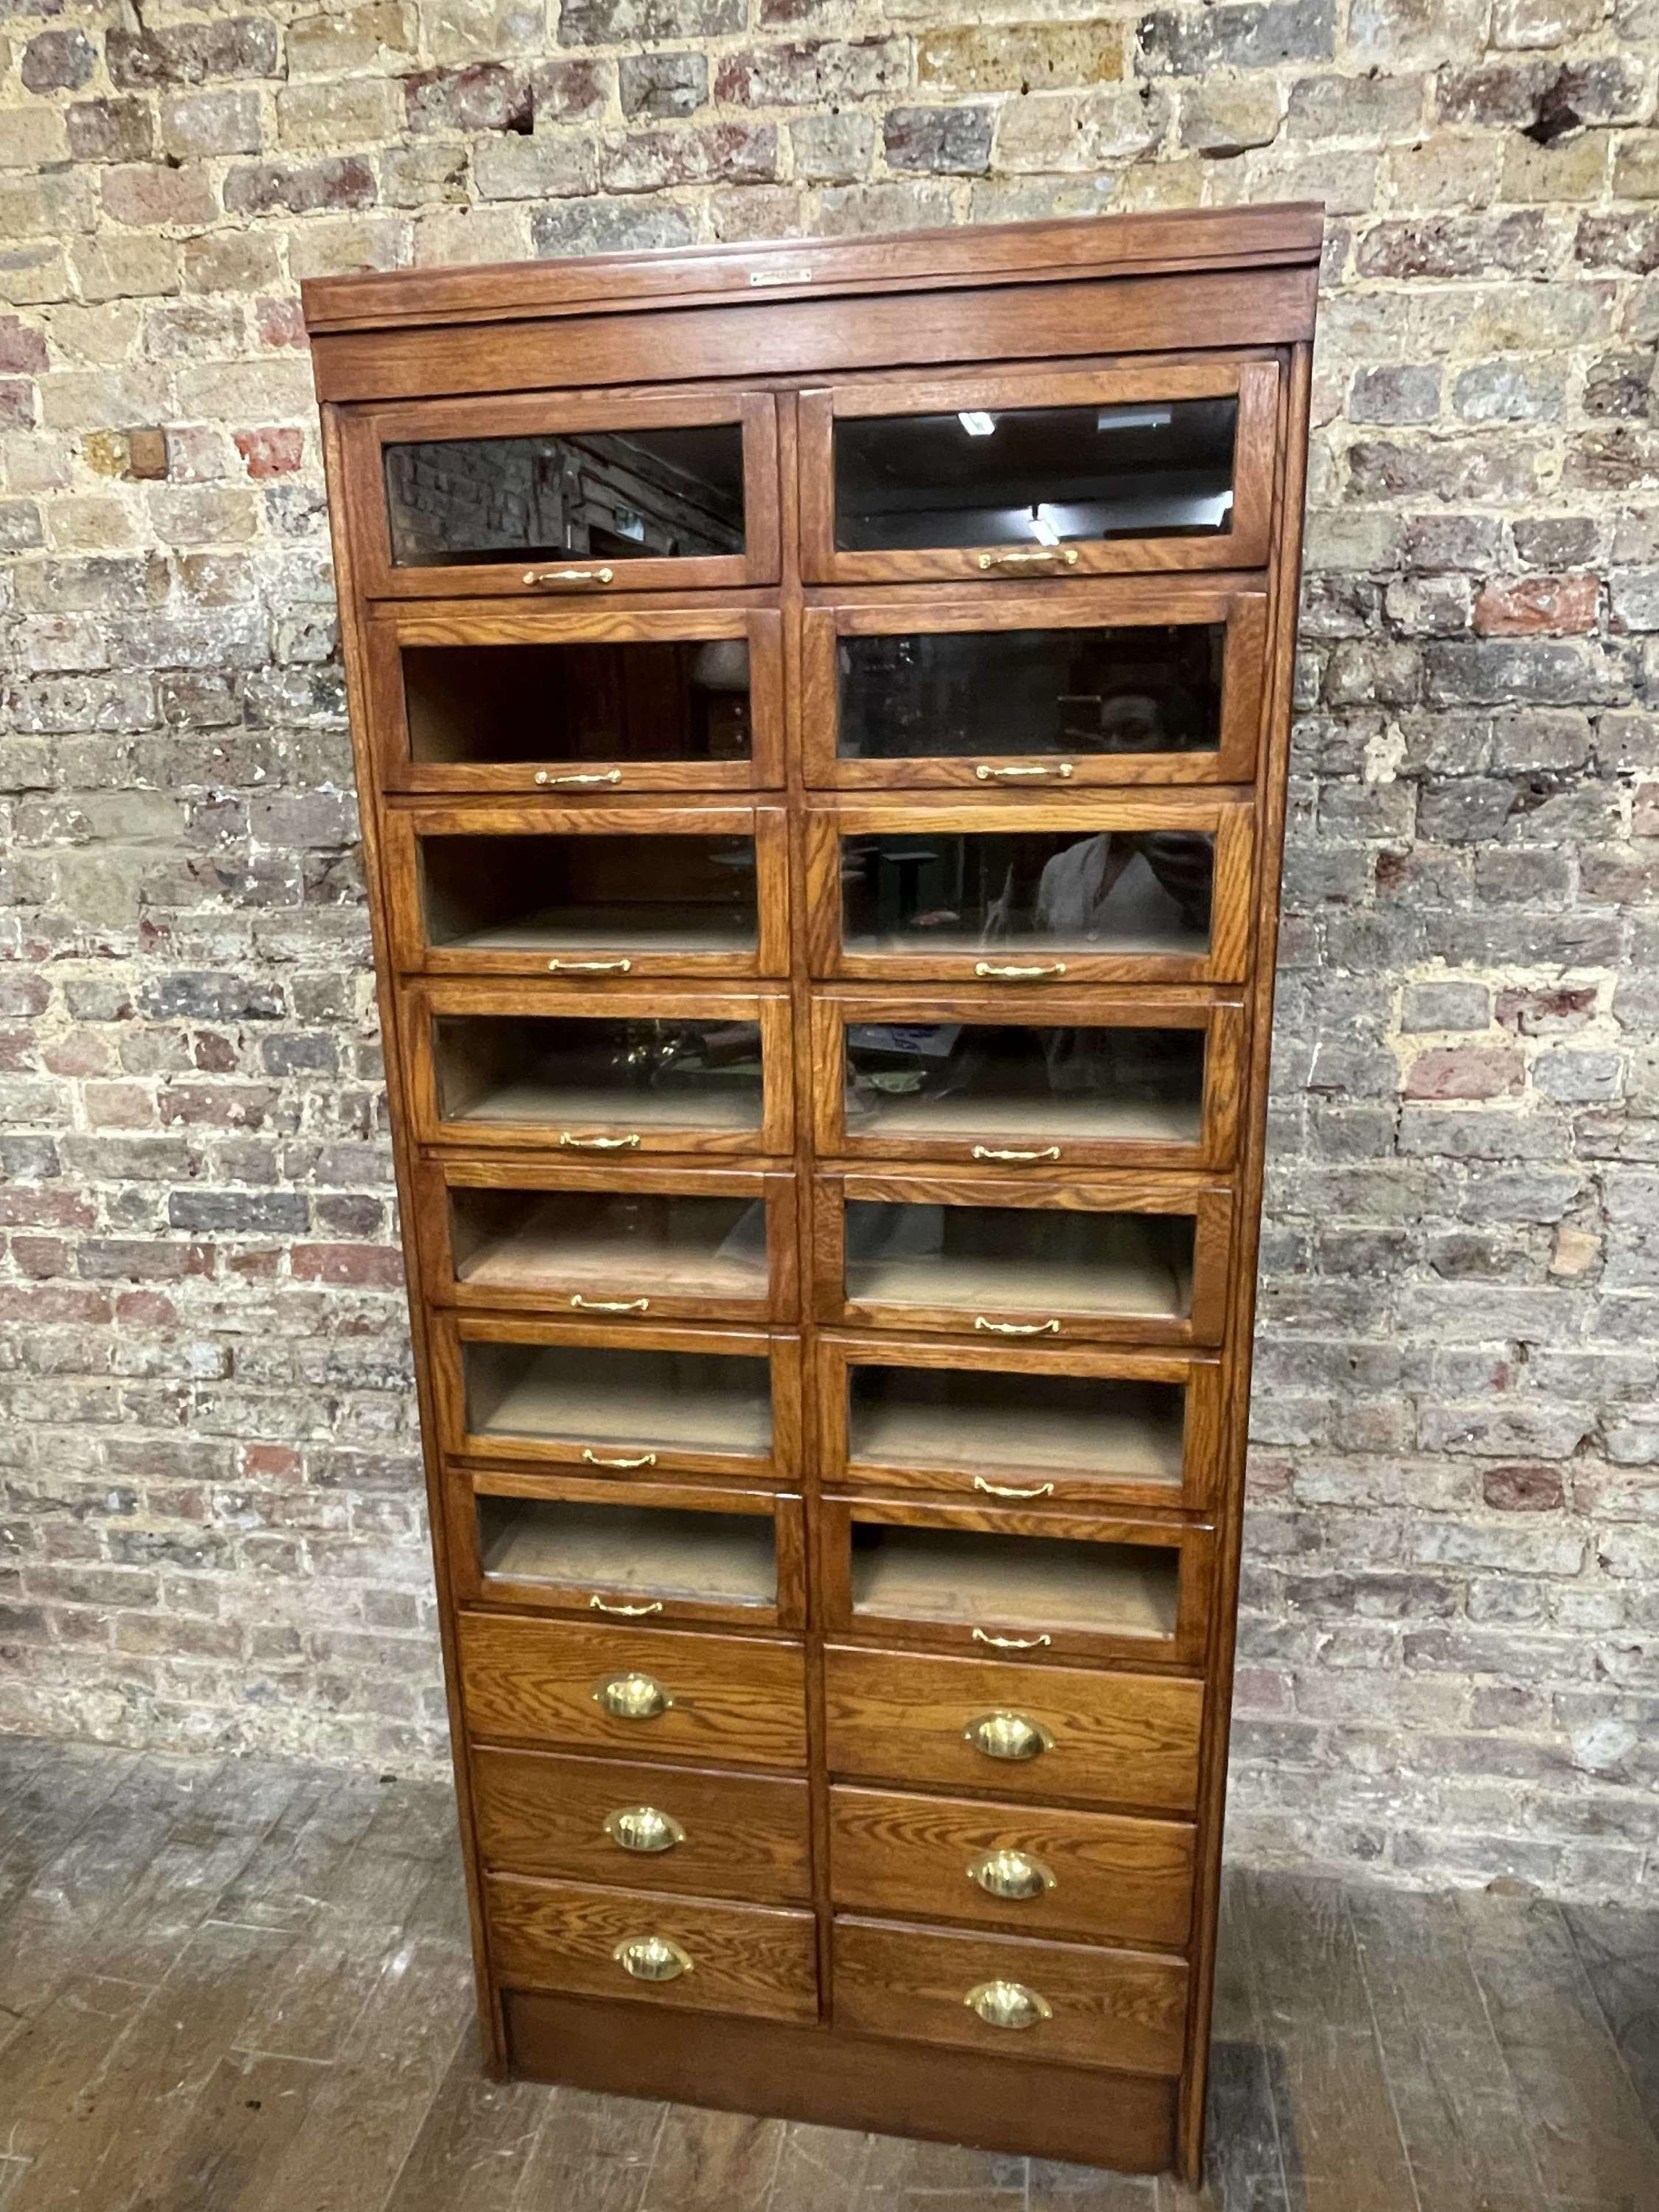 Original Dudley and Co Drapers Cabinet